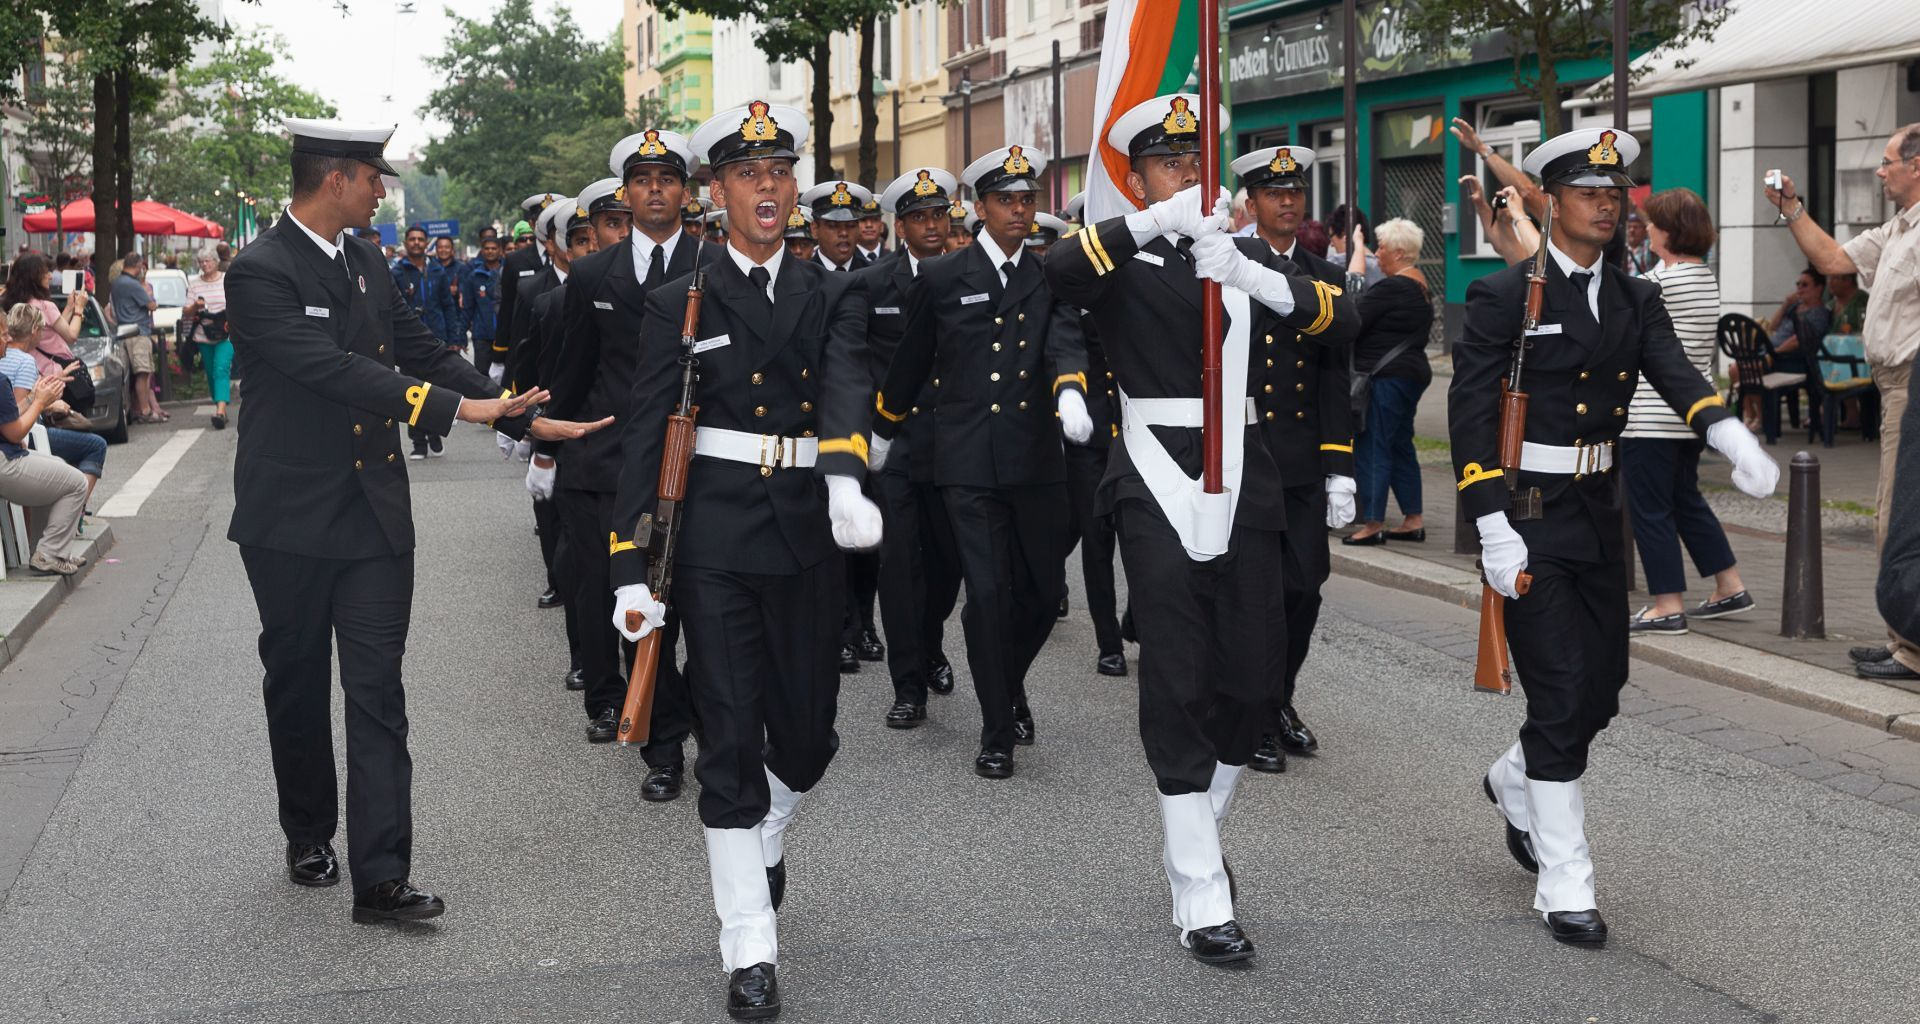 Seamen march through a pedestrian zone.